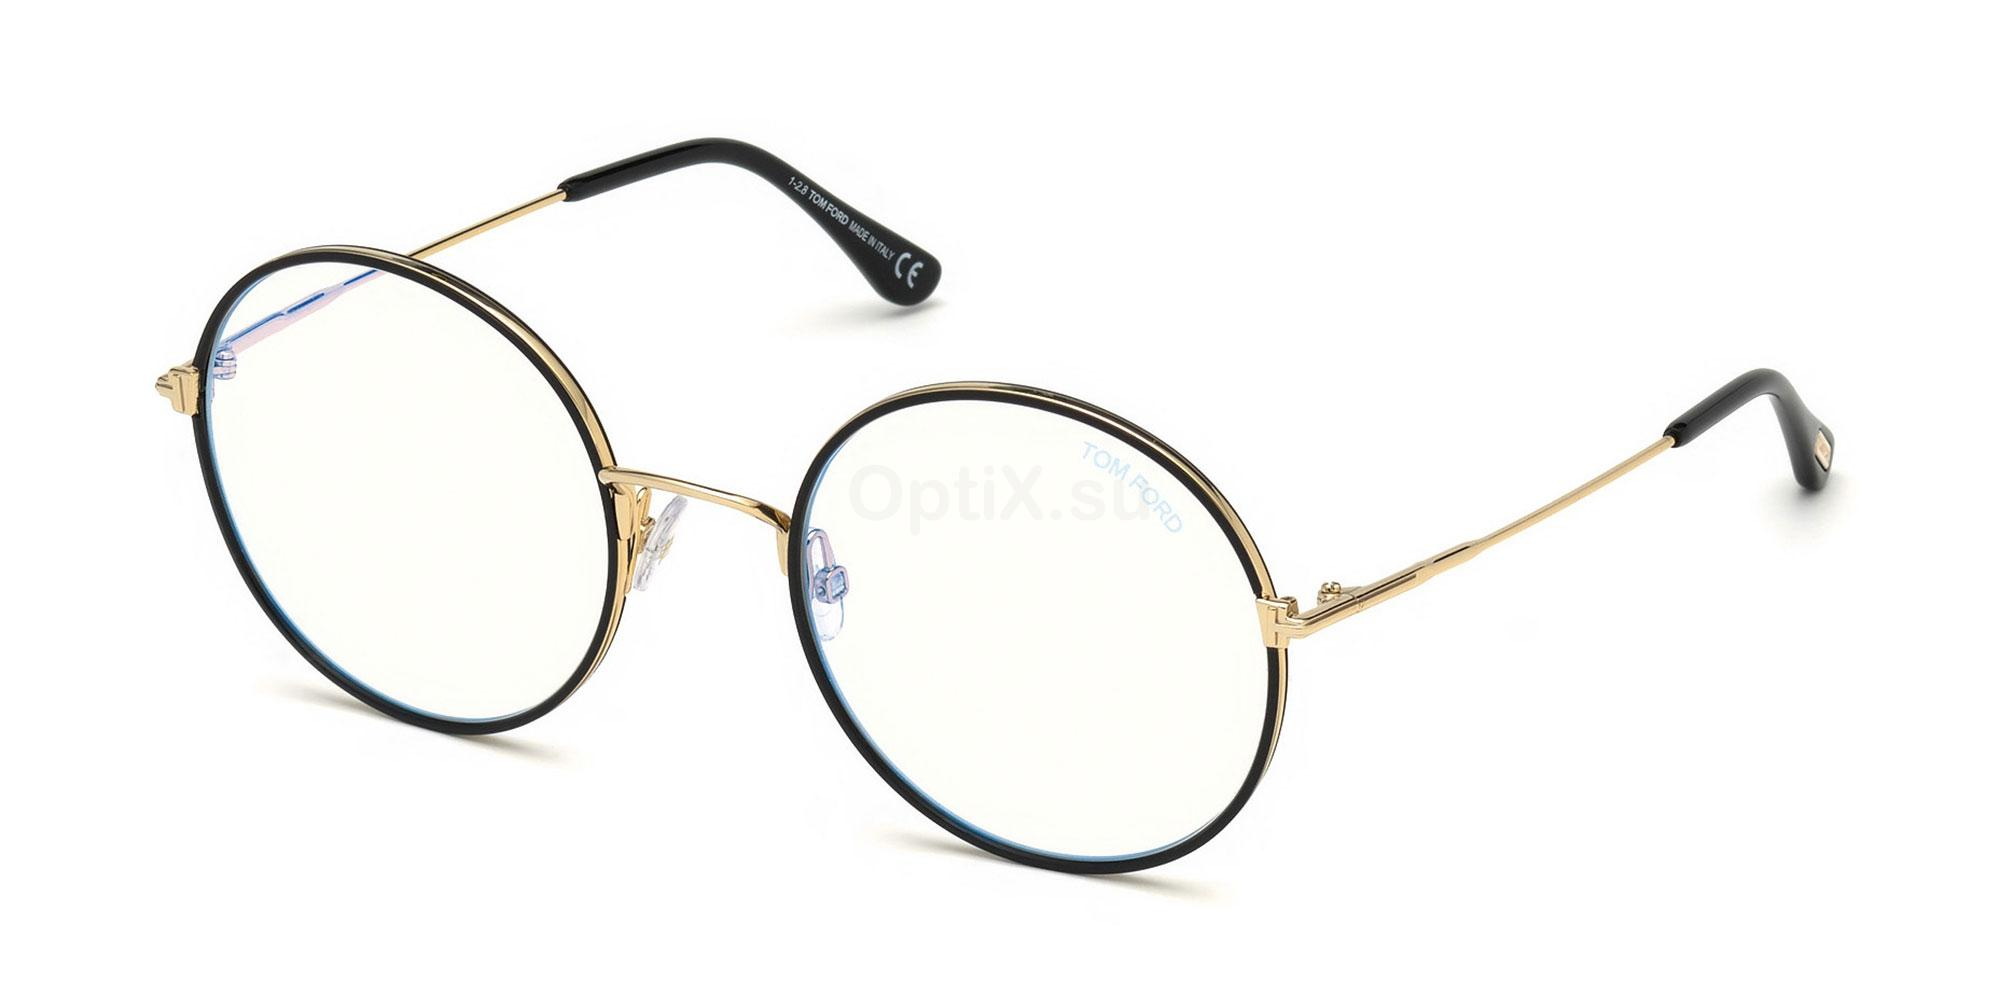 001 FT5632-B Glasses, Tom Ford